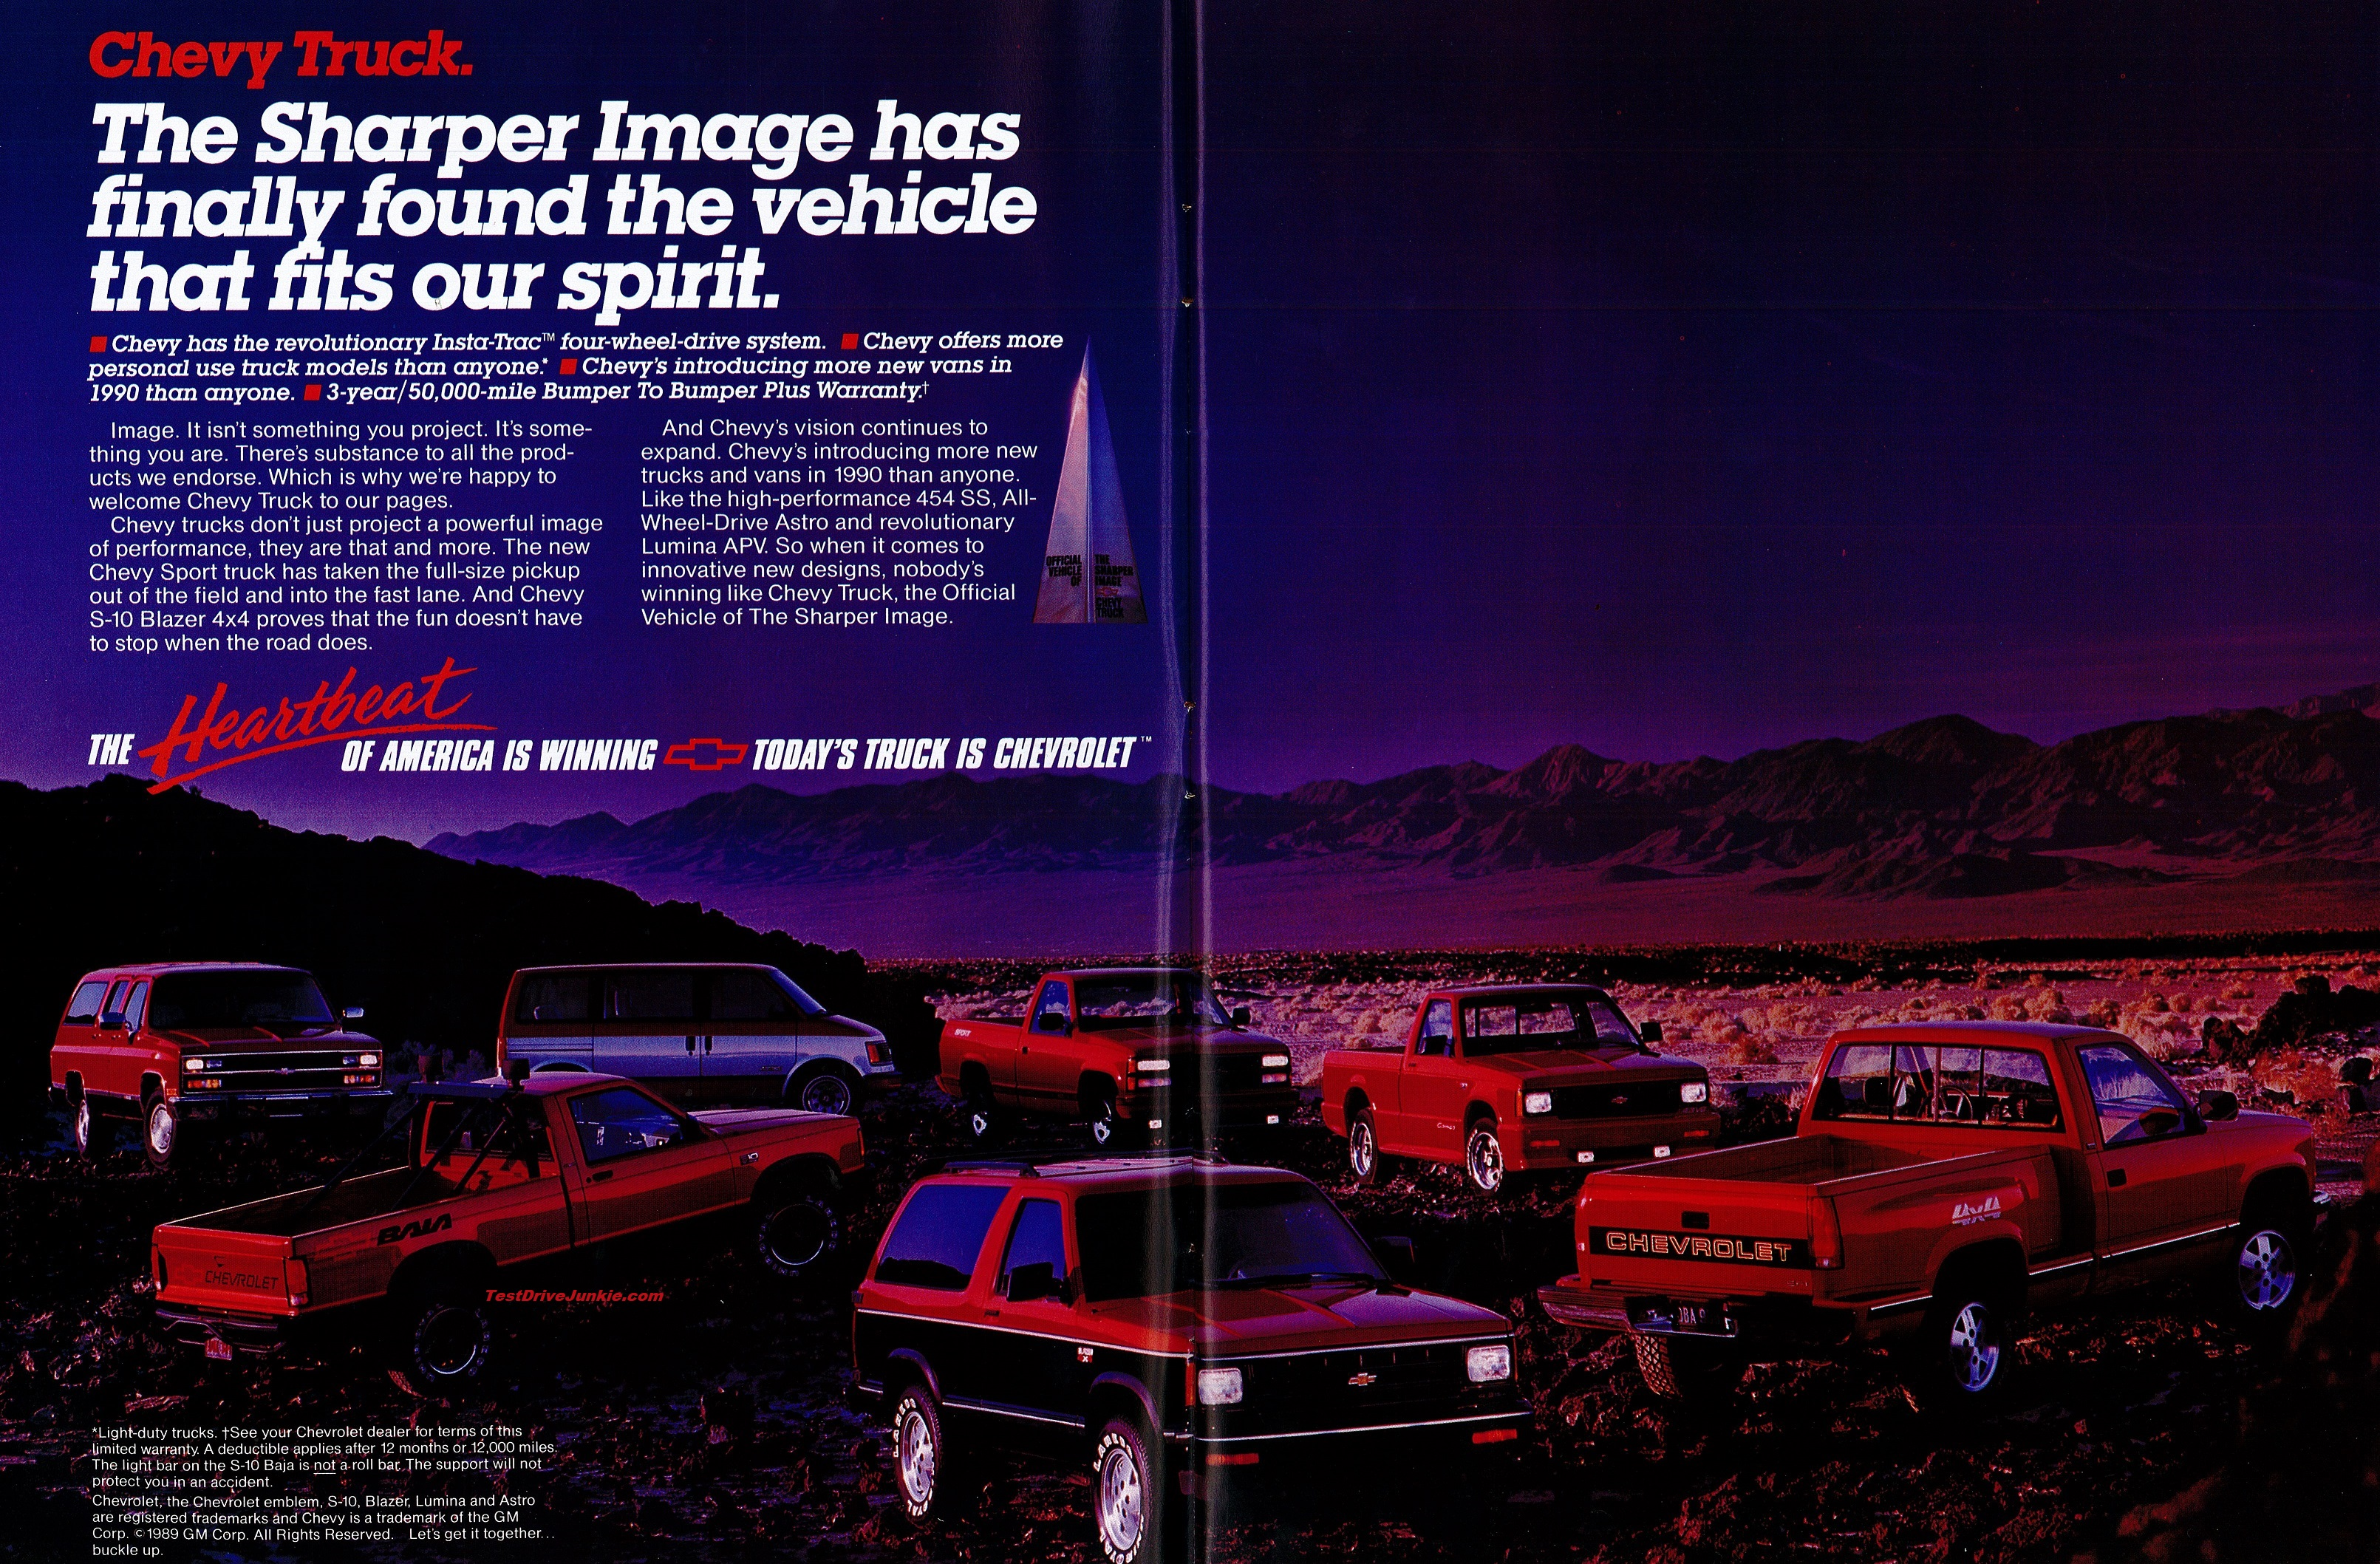 Fields Chrysler Jeep Dodge Ram >> » 1990 Chevrolet Truck Ad – The Sharper Image